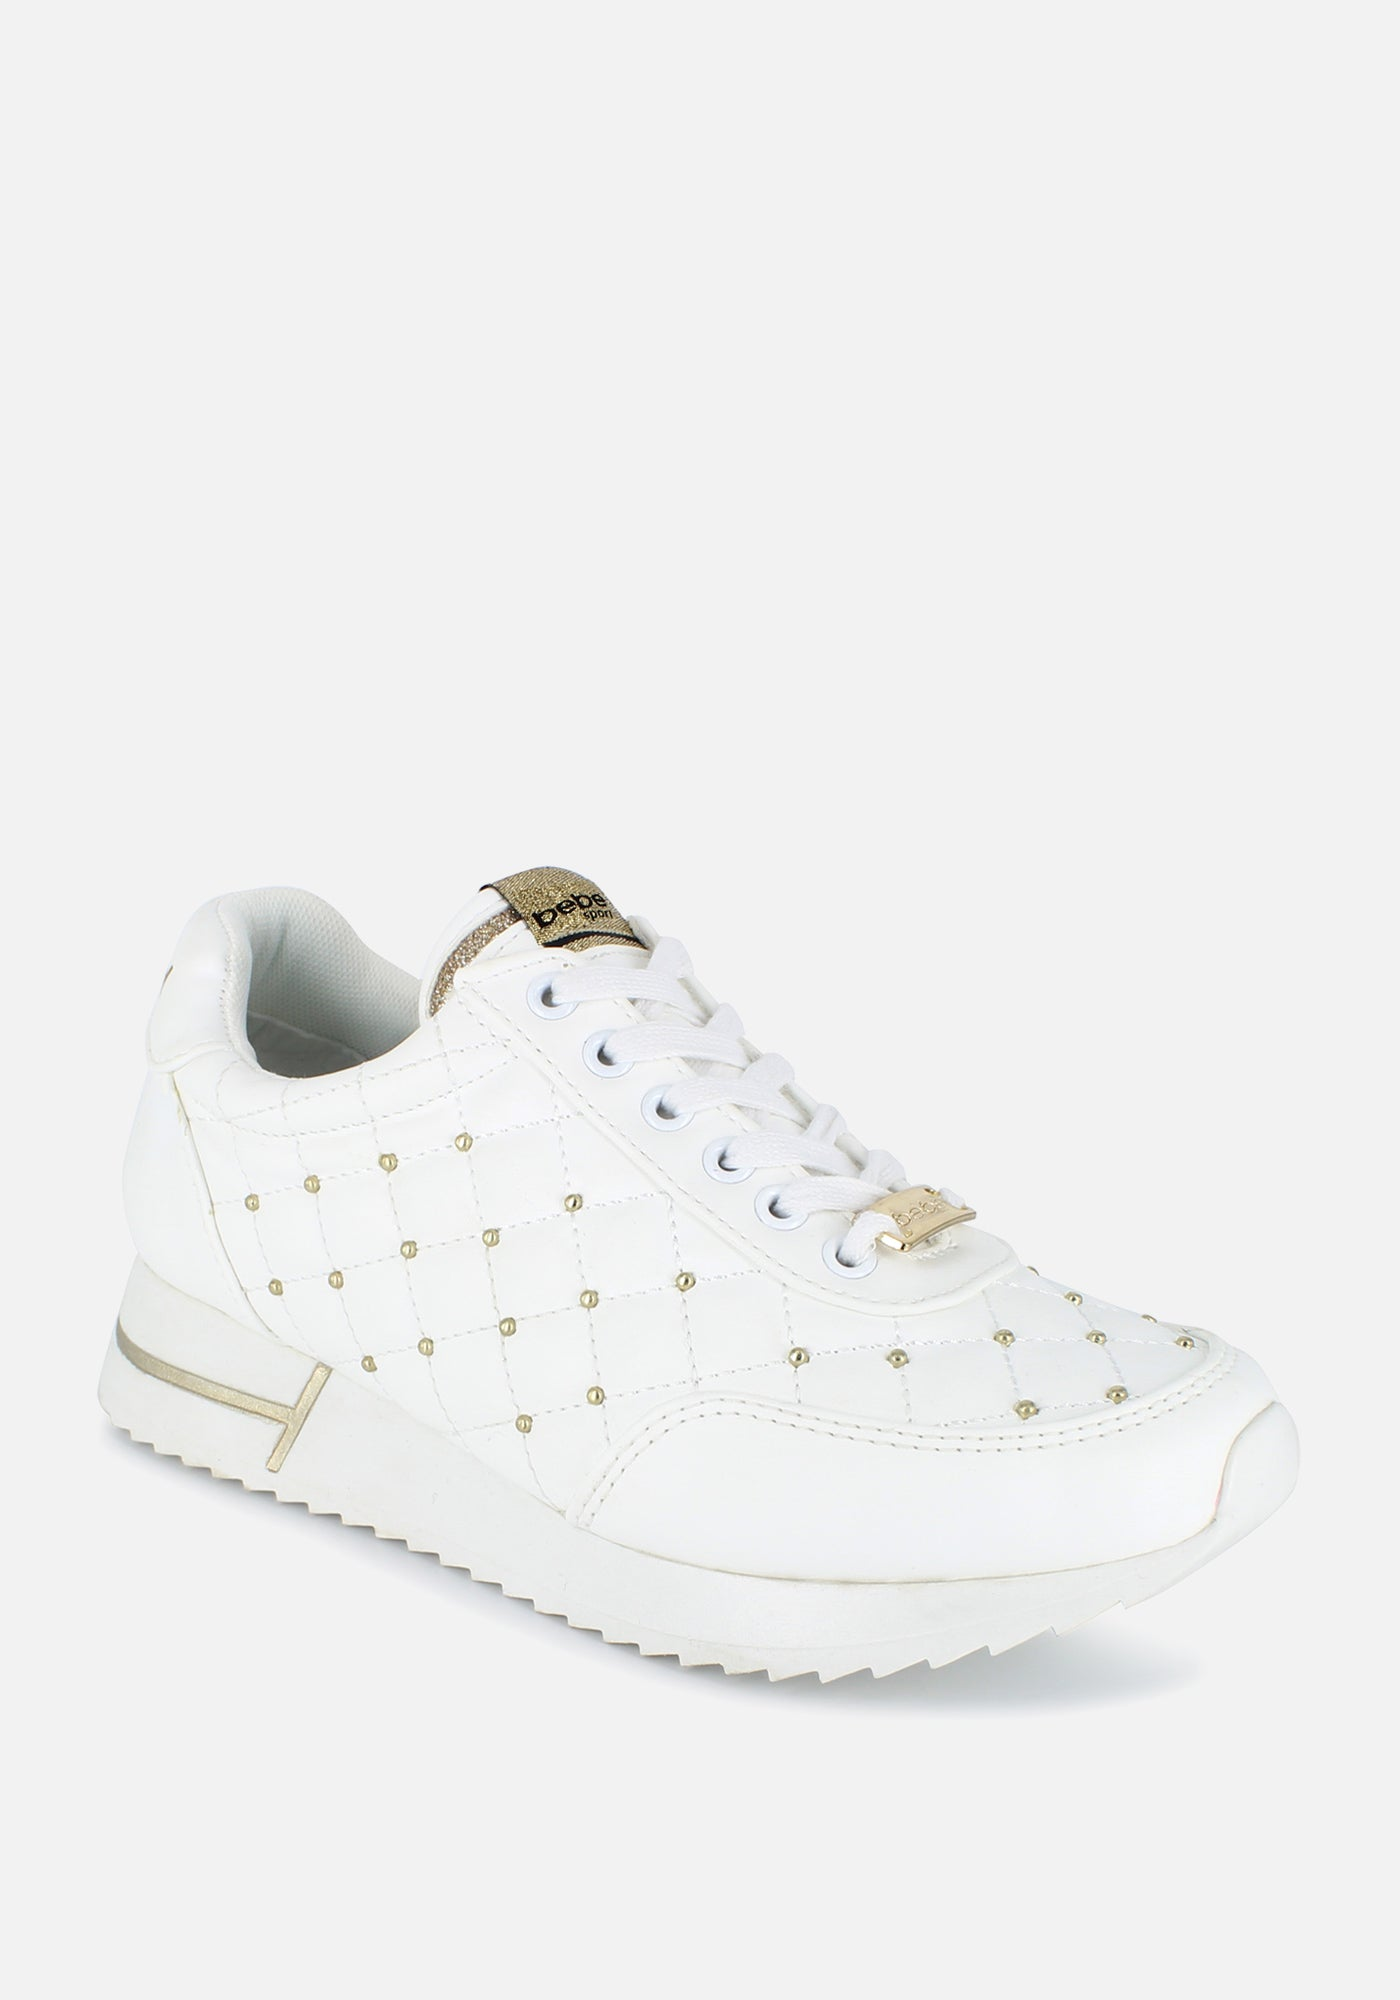 Bebe Women's Barkley Quilted Sneakers, Size 6 in White Synthetic